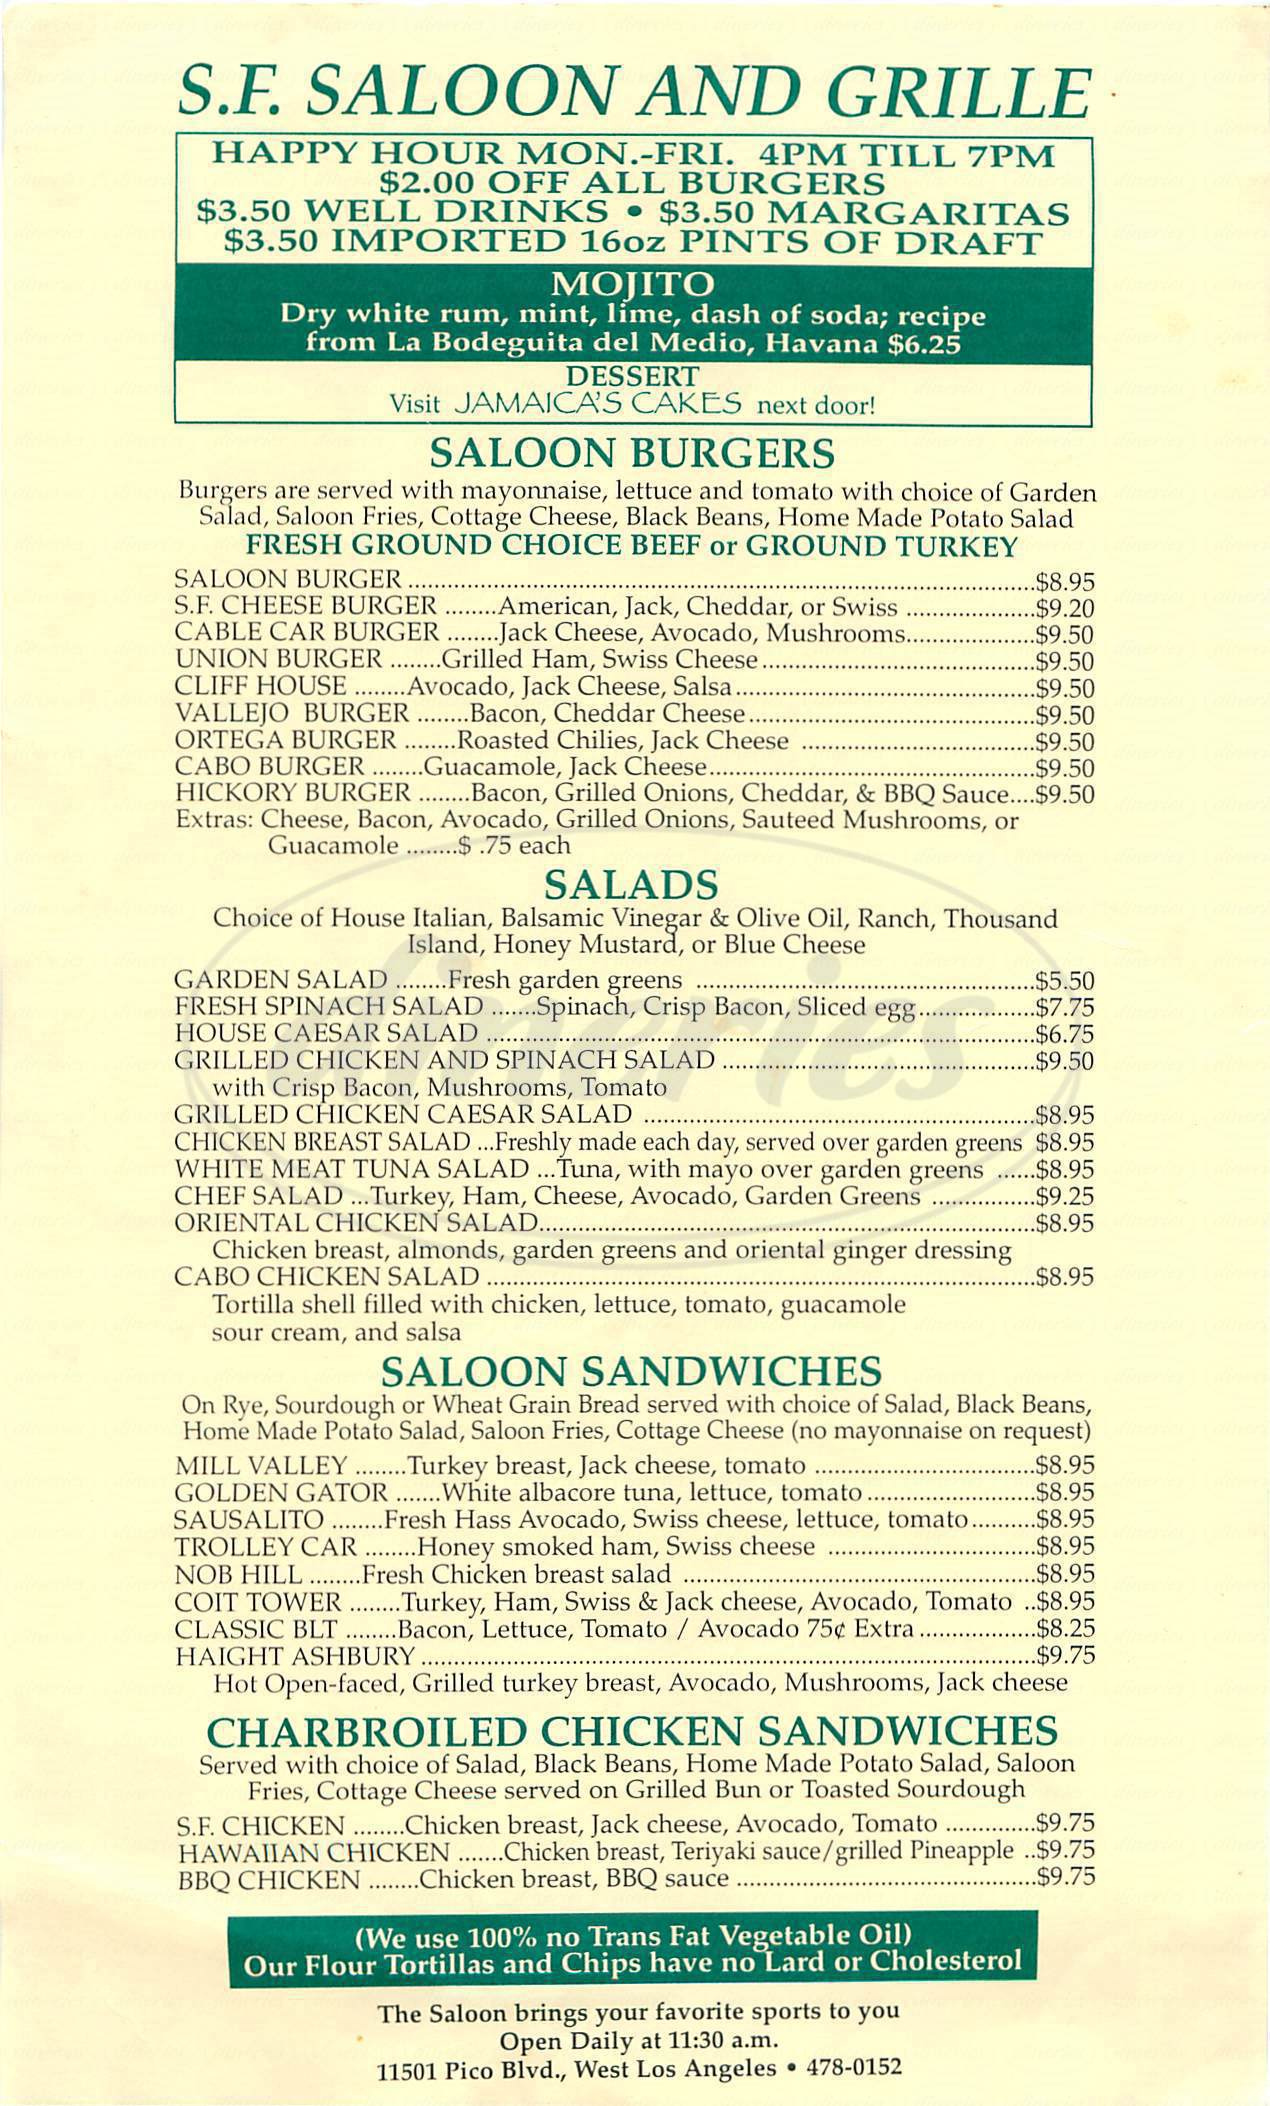 menu for SF Saloon and Grille